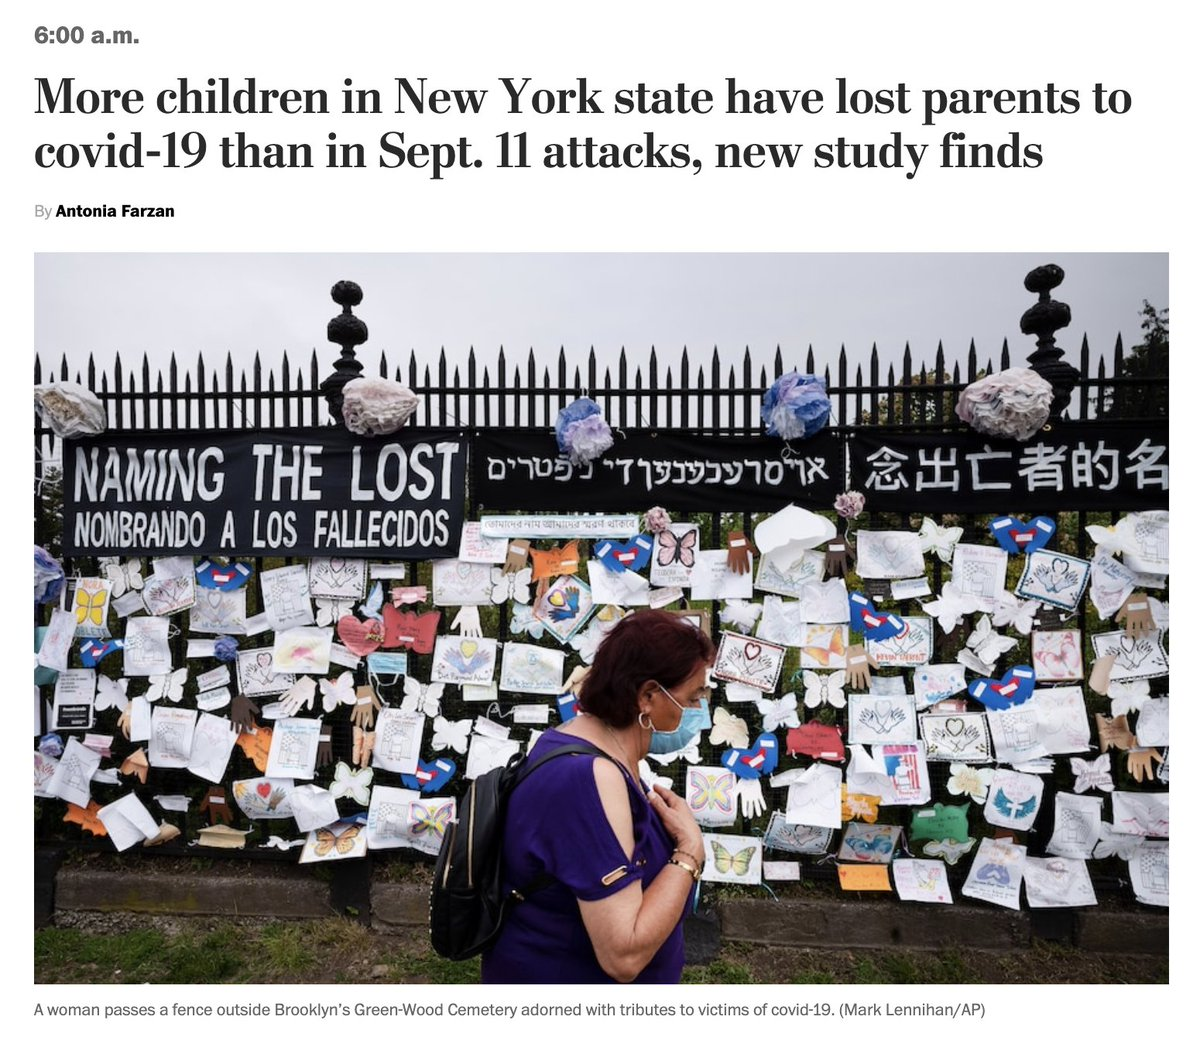 More children in New York state have lost parents to covid-19 than in 9/11, a new study finds. That's 4,200 kids, 1 of every 600 Black children, 1 of 700 Hispanic children. And 325,000 are facing poverty now. Just in New York. https://t.co/zEEwly15Ql https://t.co/uuKazkzKVH